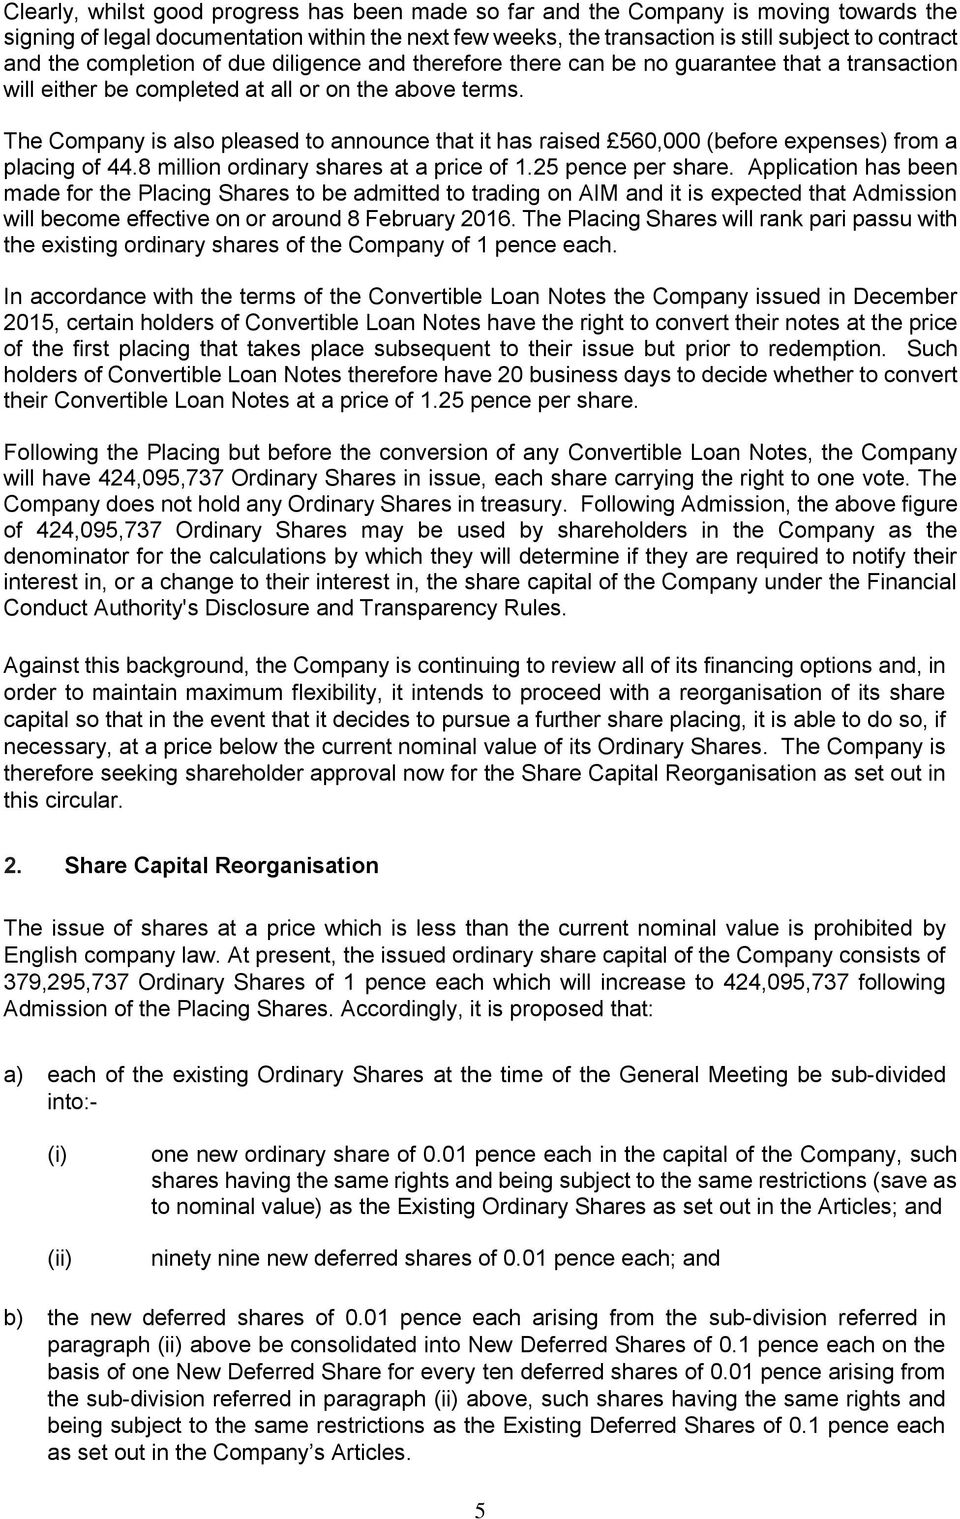 The Company is also pleased to announce that it has raised 560,000 (before expenses) from a placing of 44.8 million ordinary shares at a price of 1.25 pence per share.